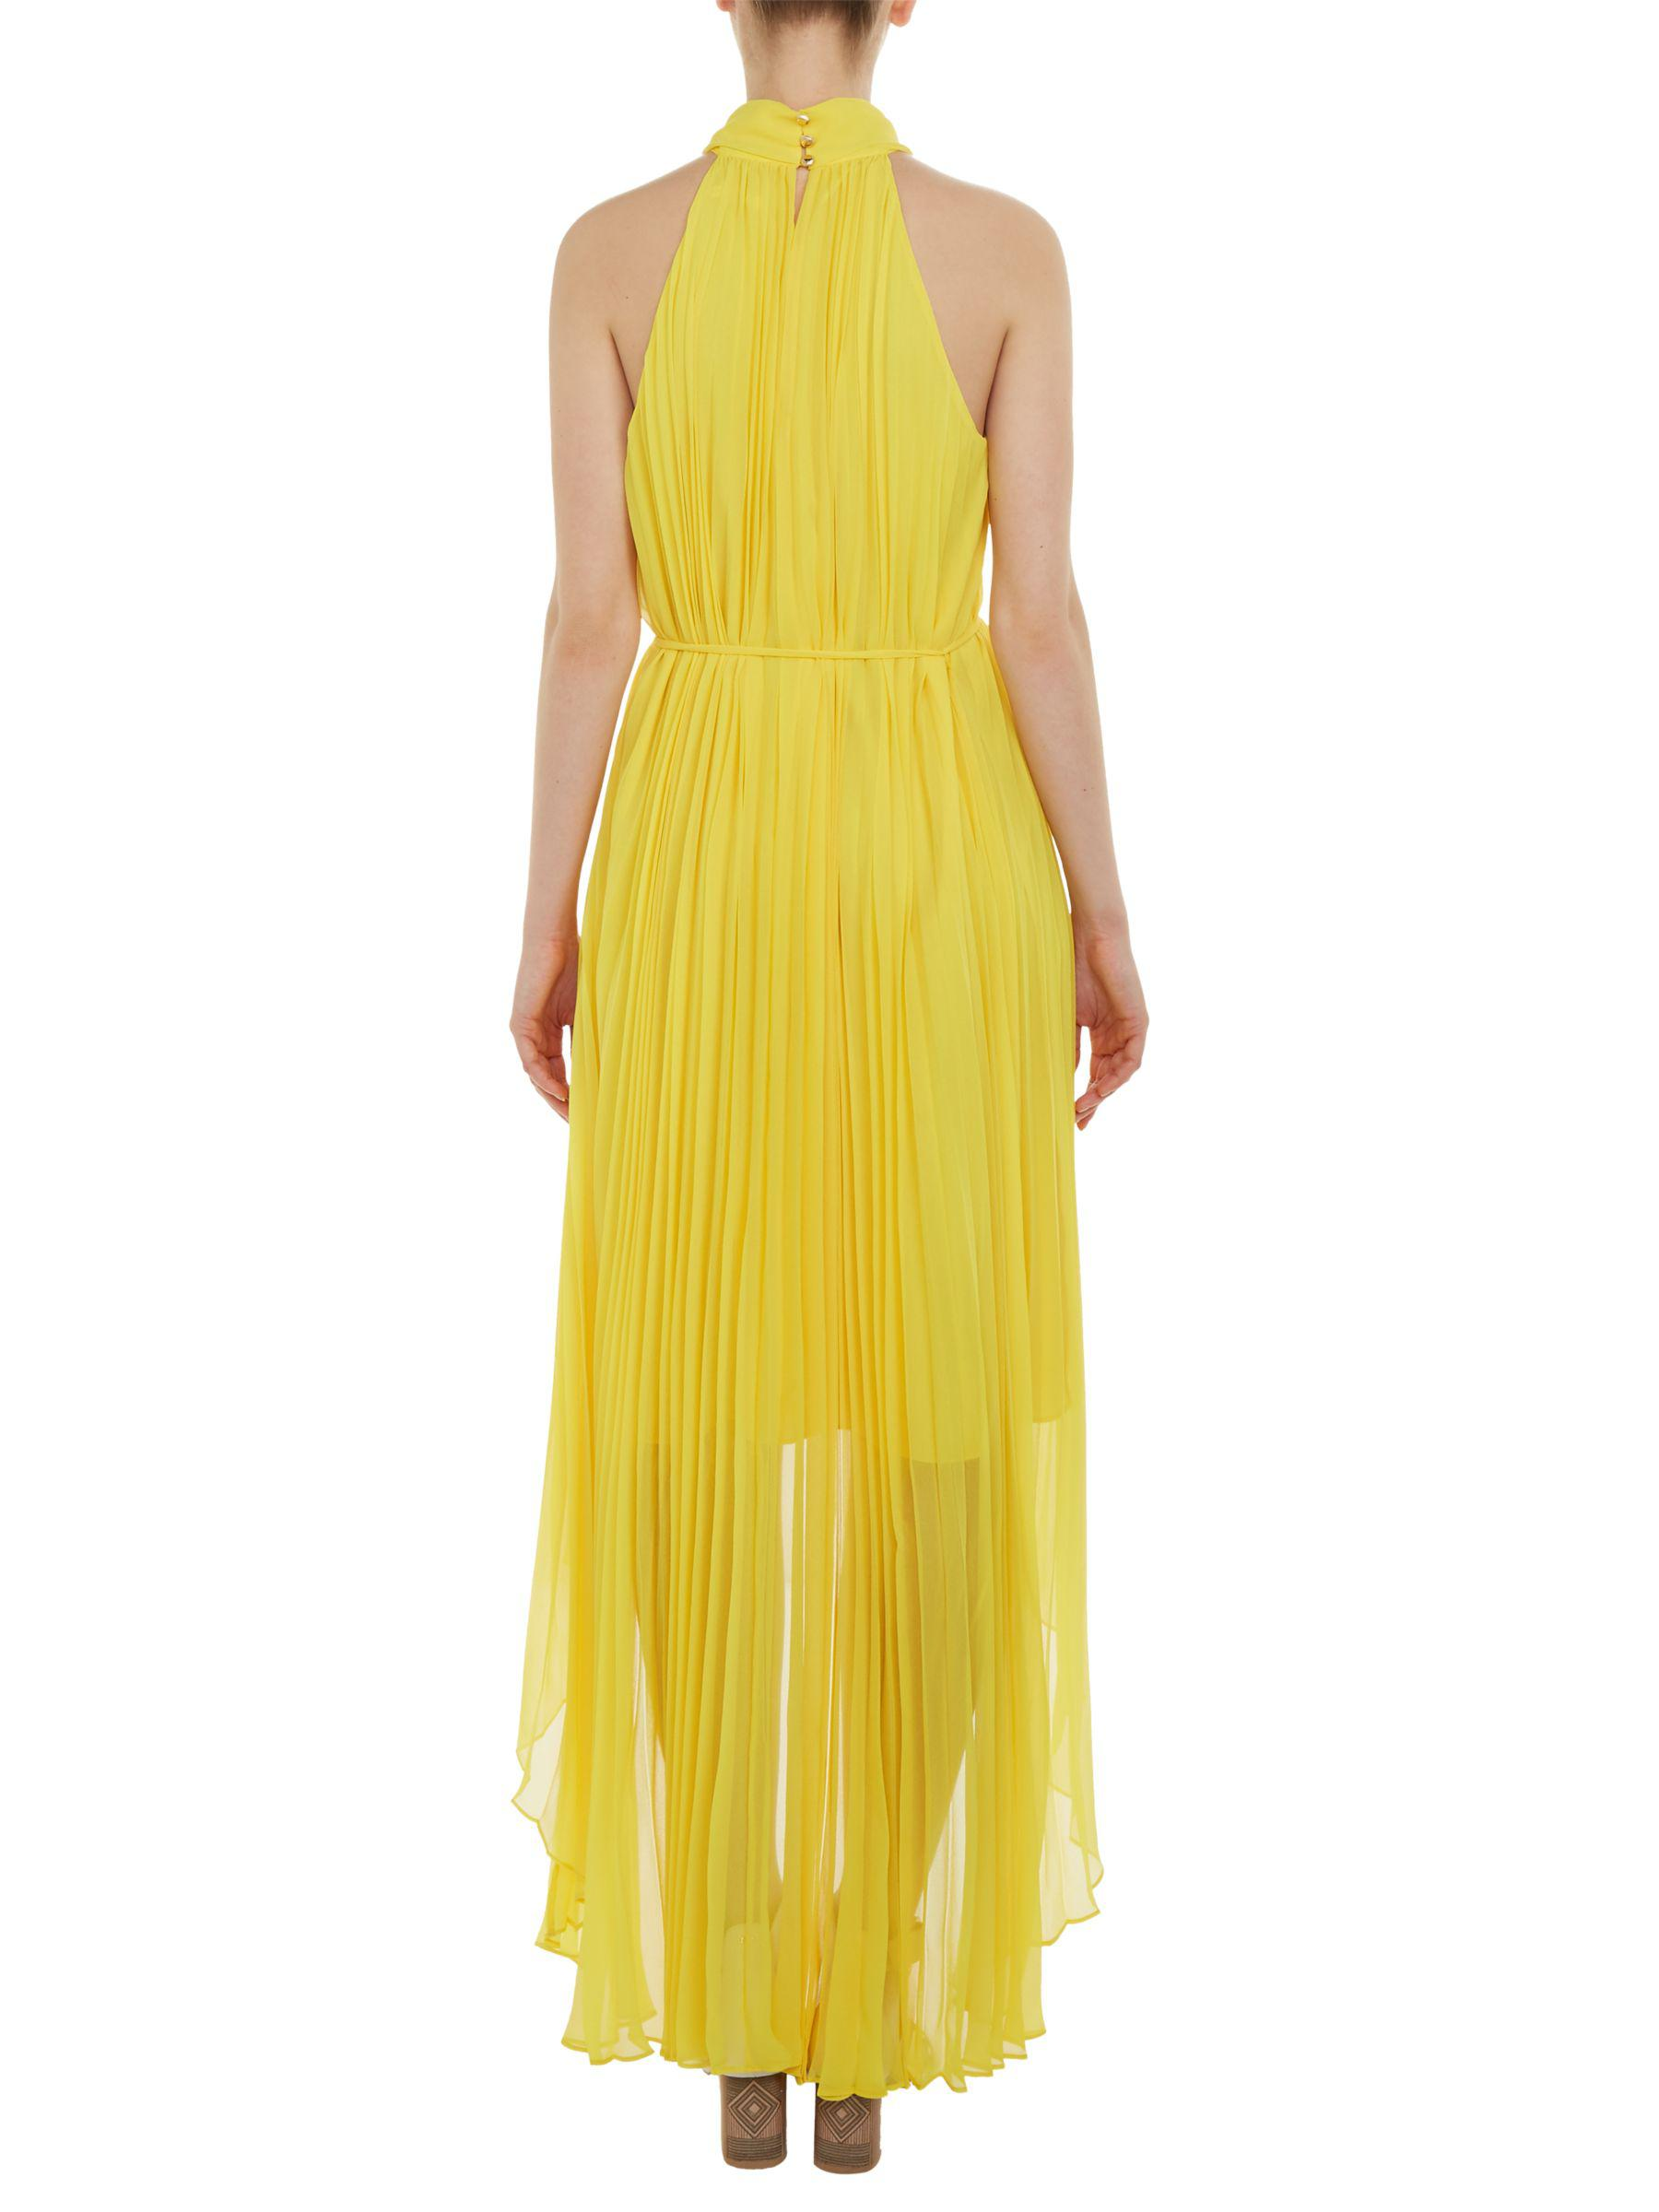 7bfe3f6c6cdf75 Ted Baker Nadette Pleated Collar Maxi Dress in Yellow - Lyst